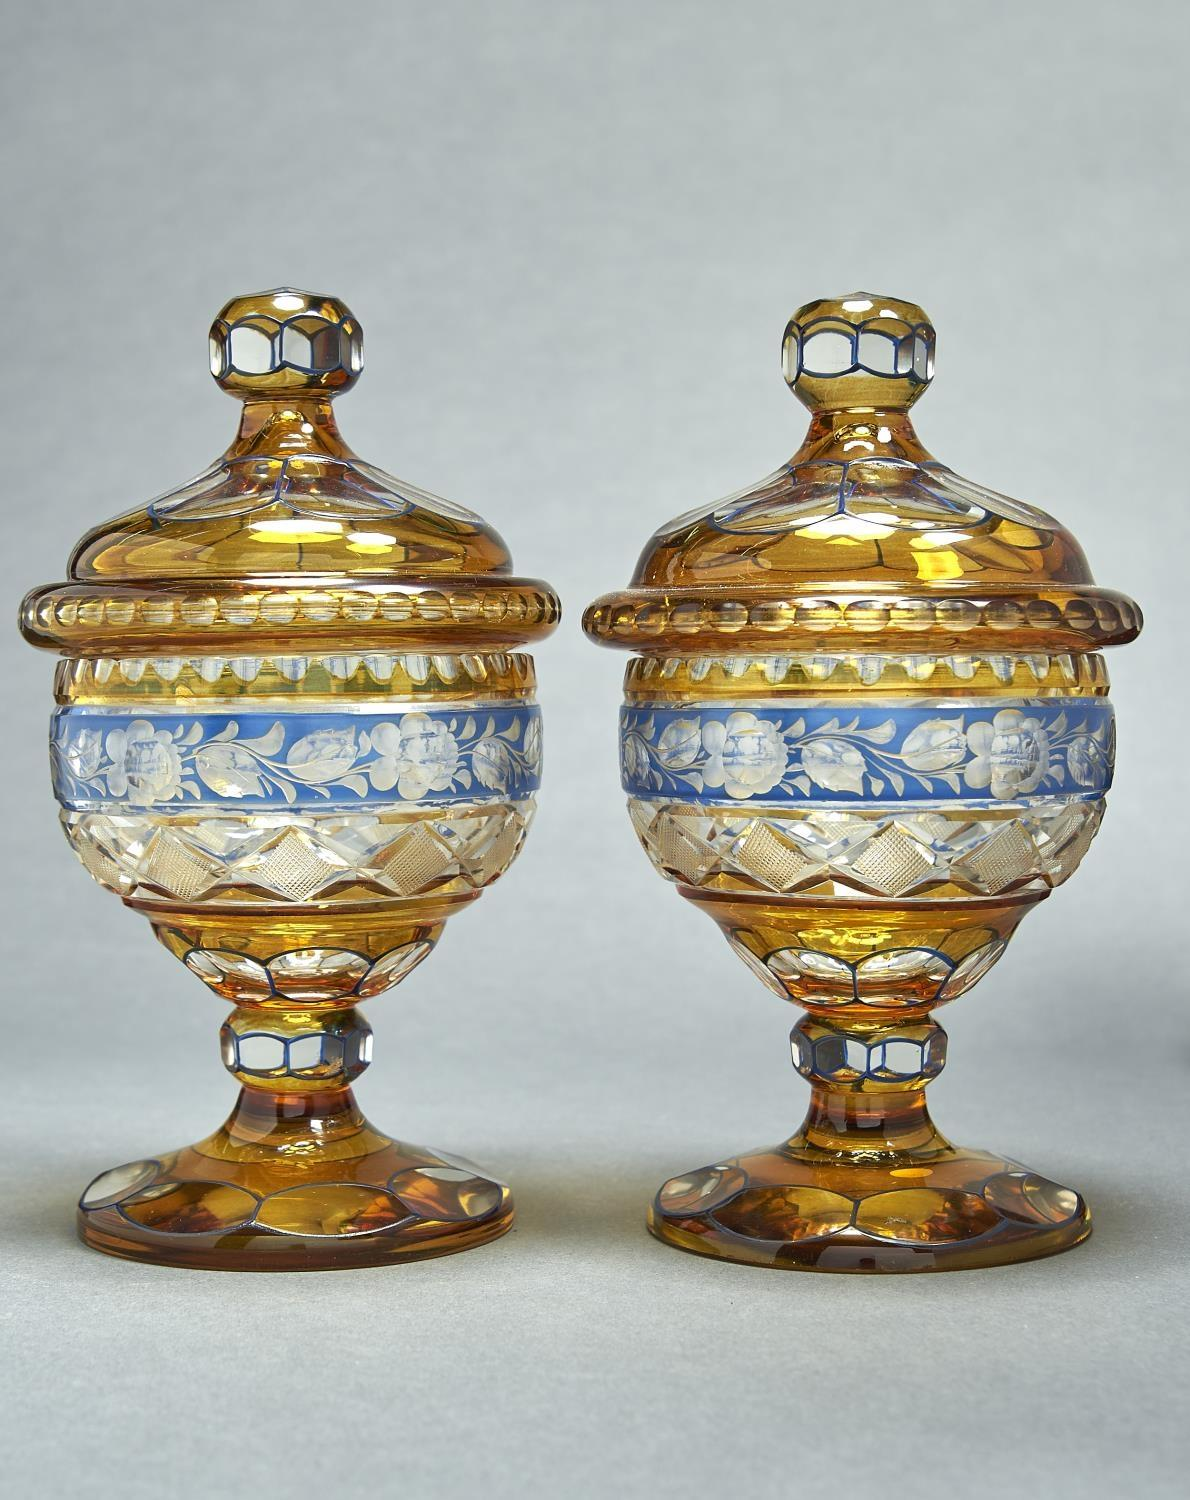 A PAIR OF BOHEMIAN CUT AND BLUE AND AMBER FLASHED GLASS SWEETMEAT JARS AND COVERS, EARLY 20TH C, THE